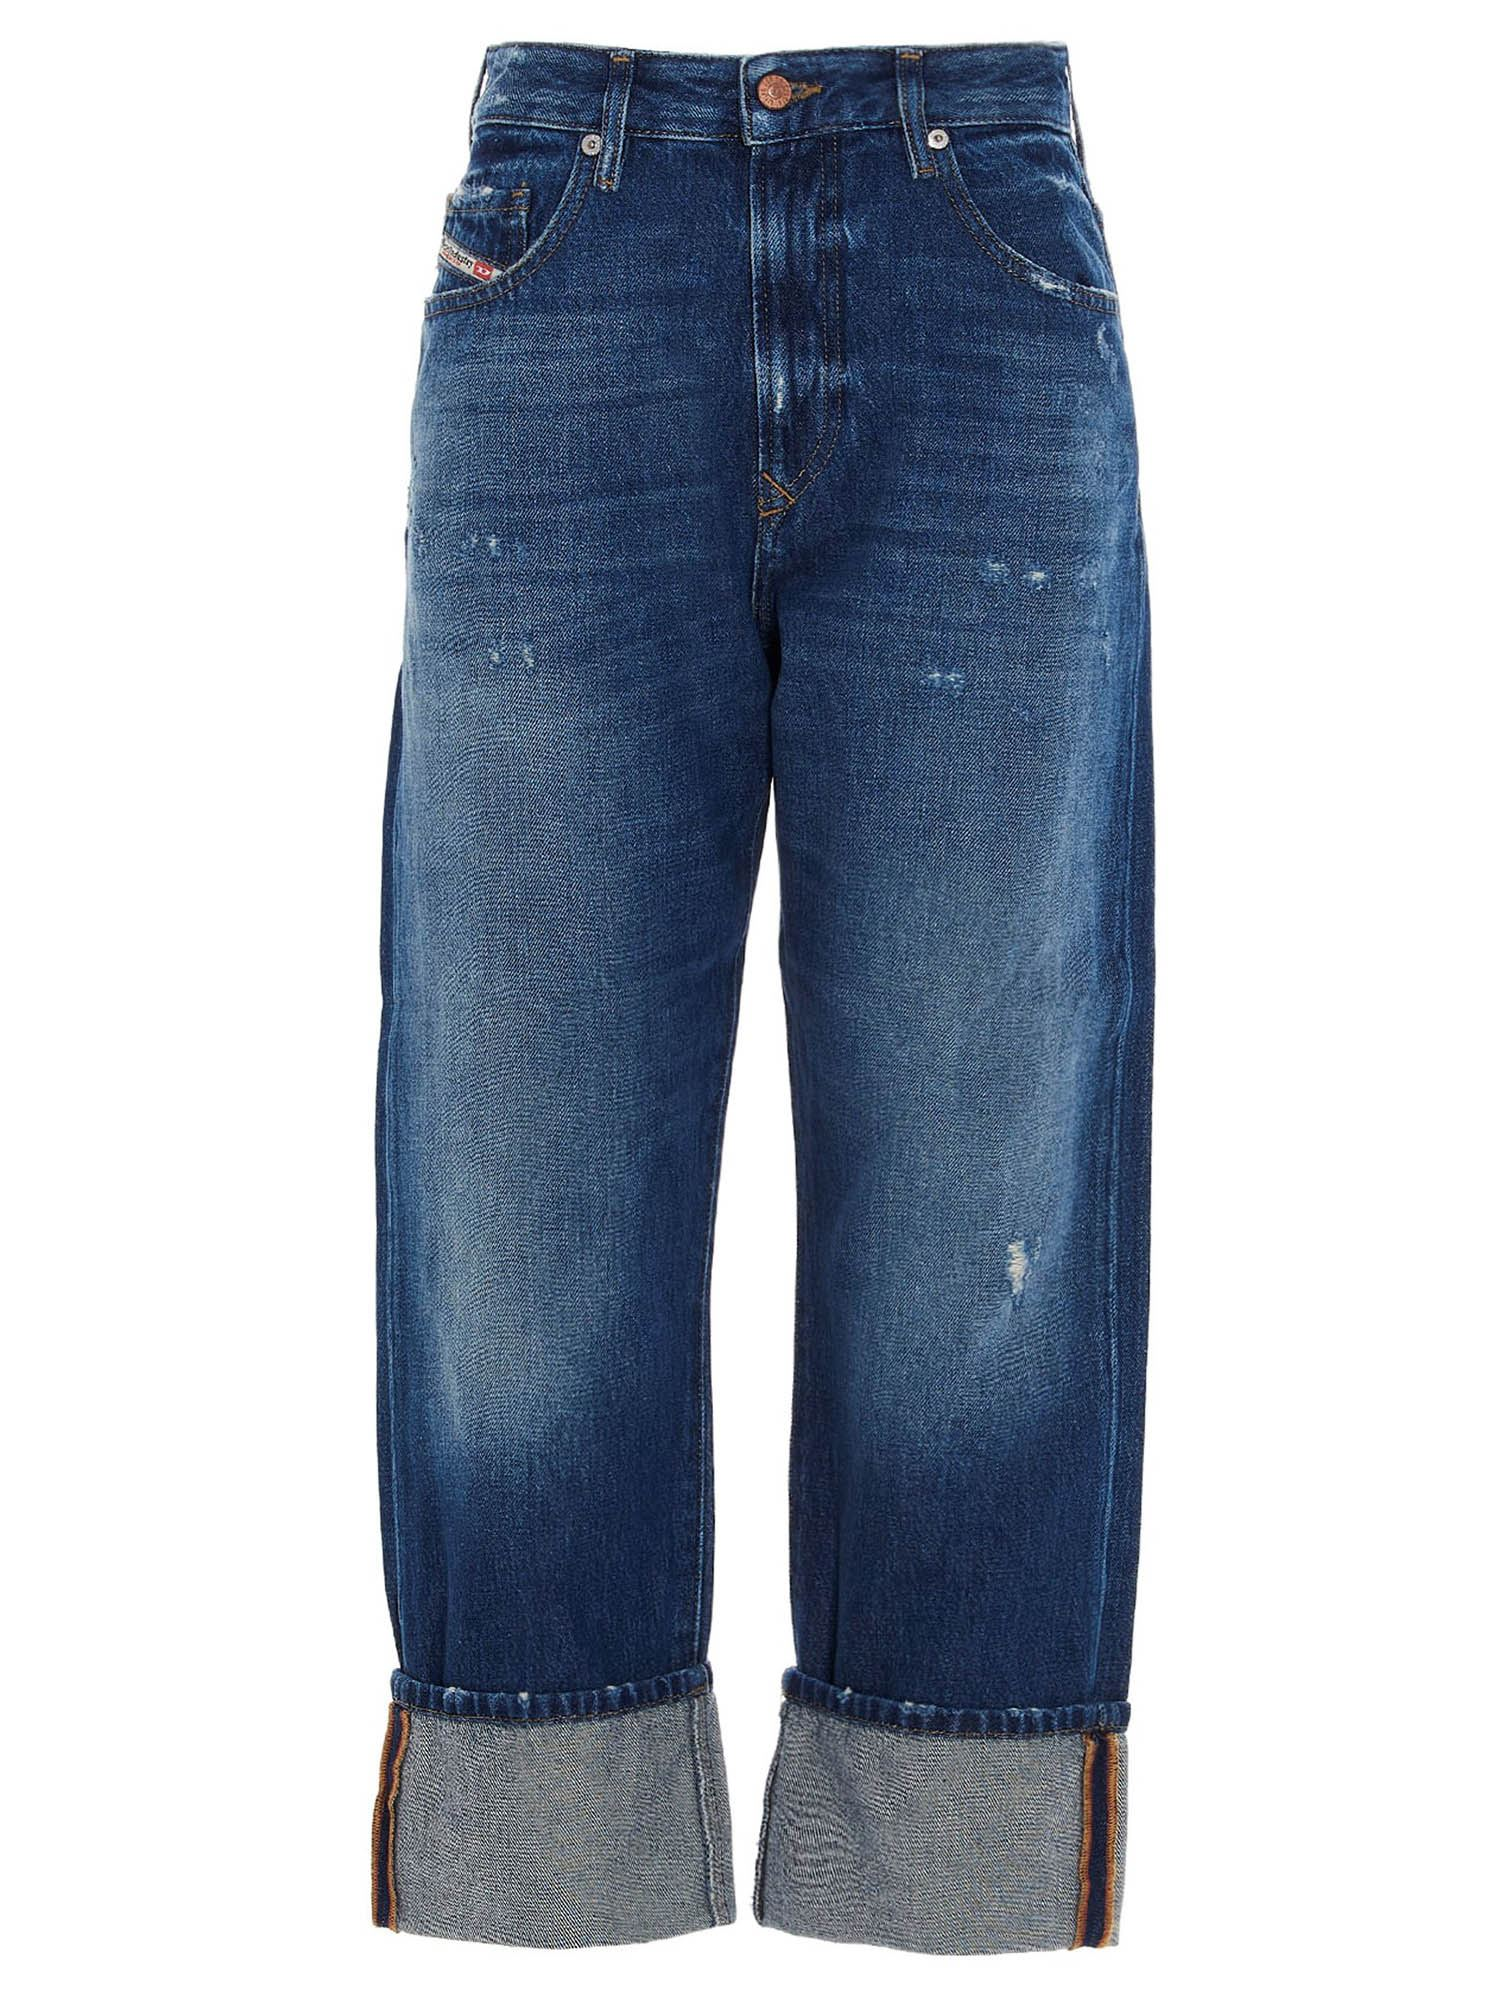 DIESEL D-REGGY JEANS IN BLUE